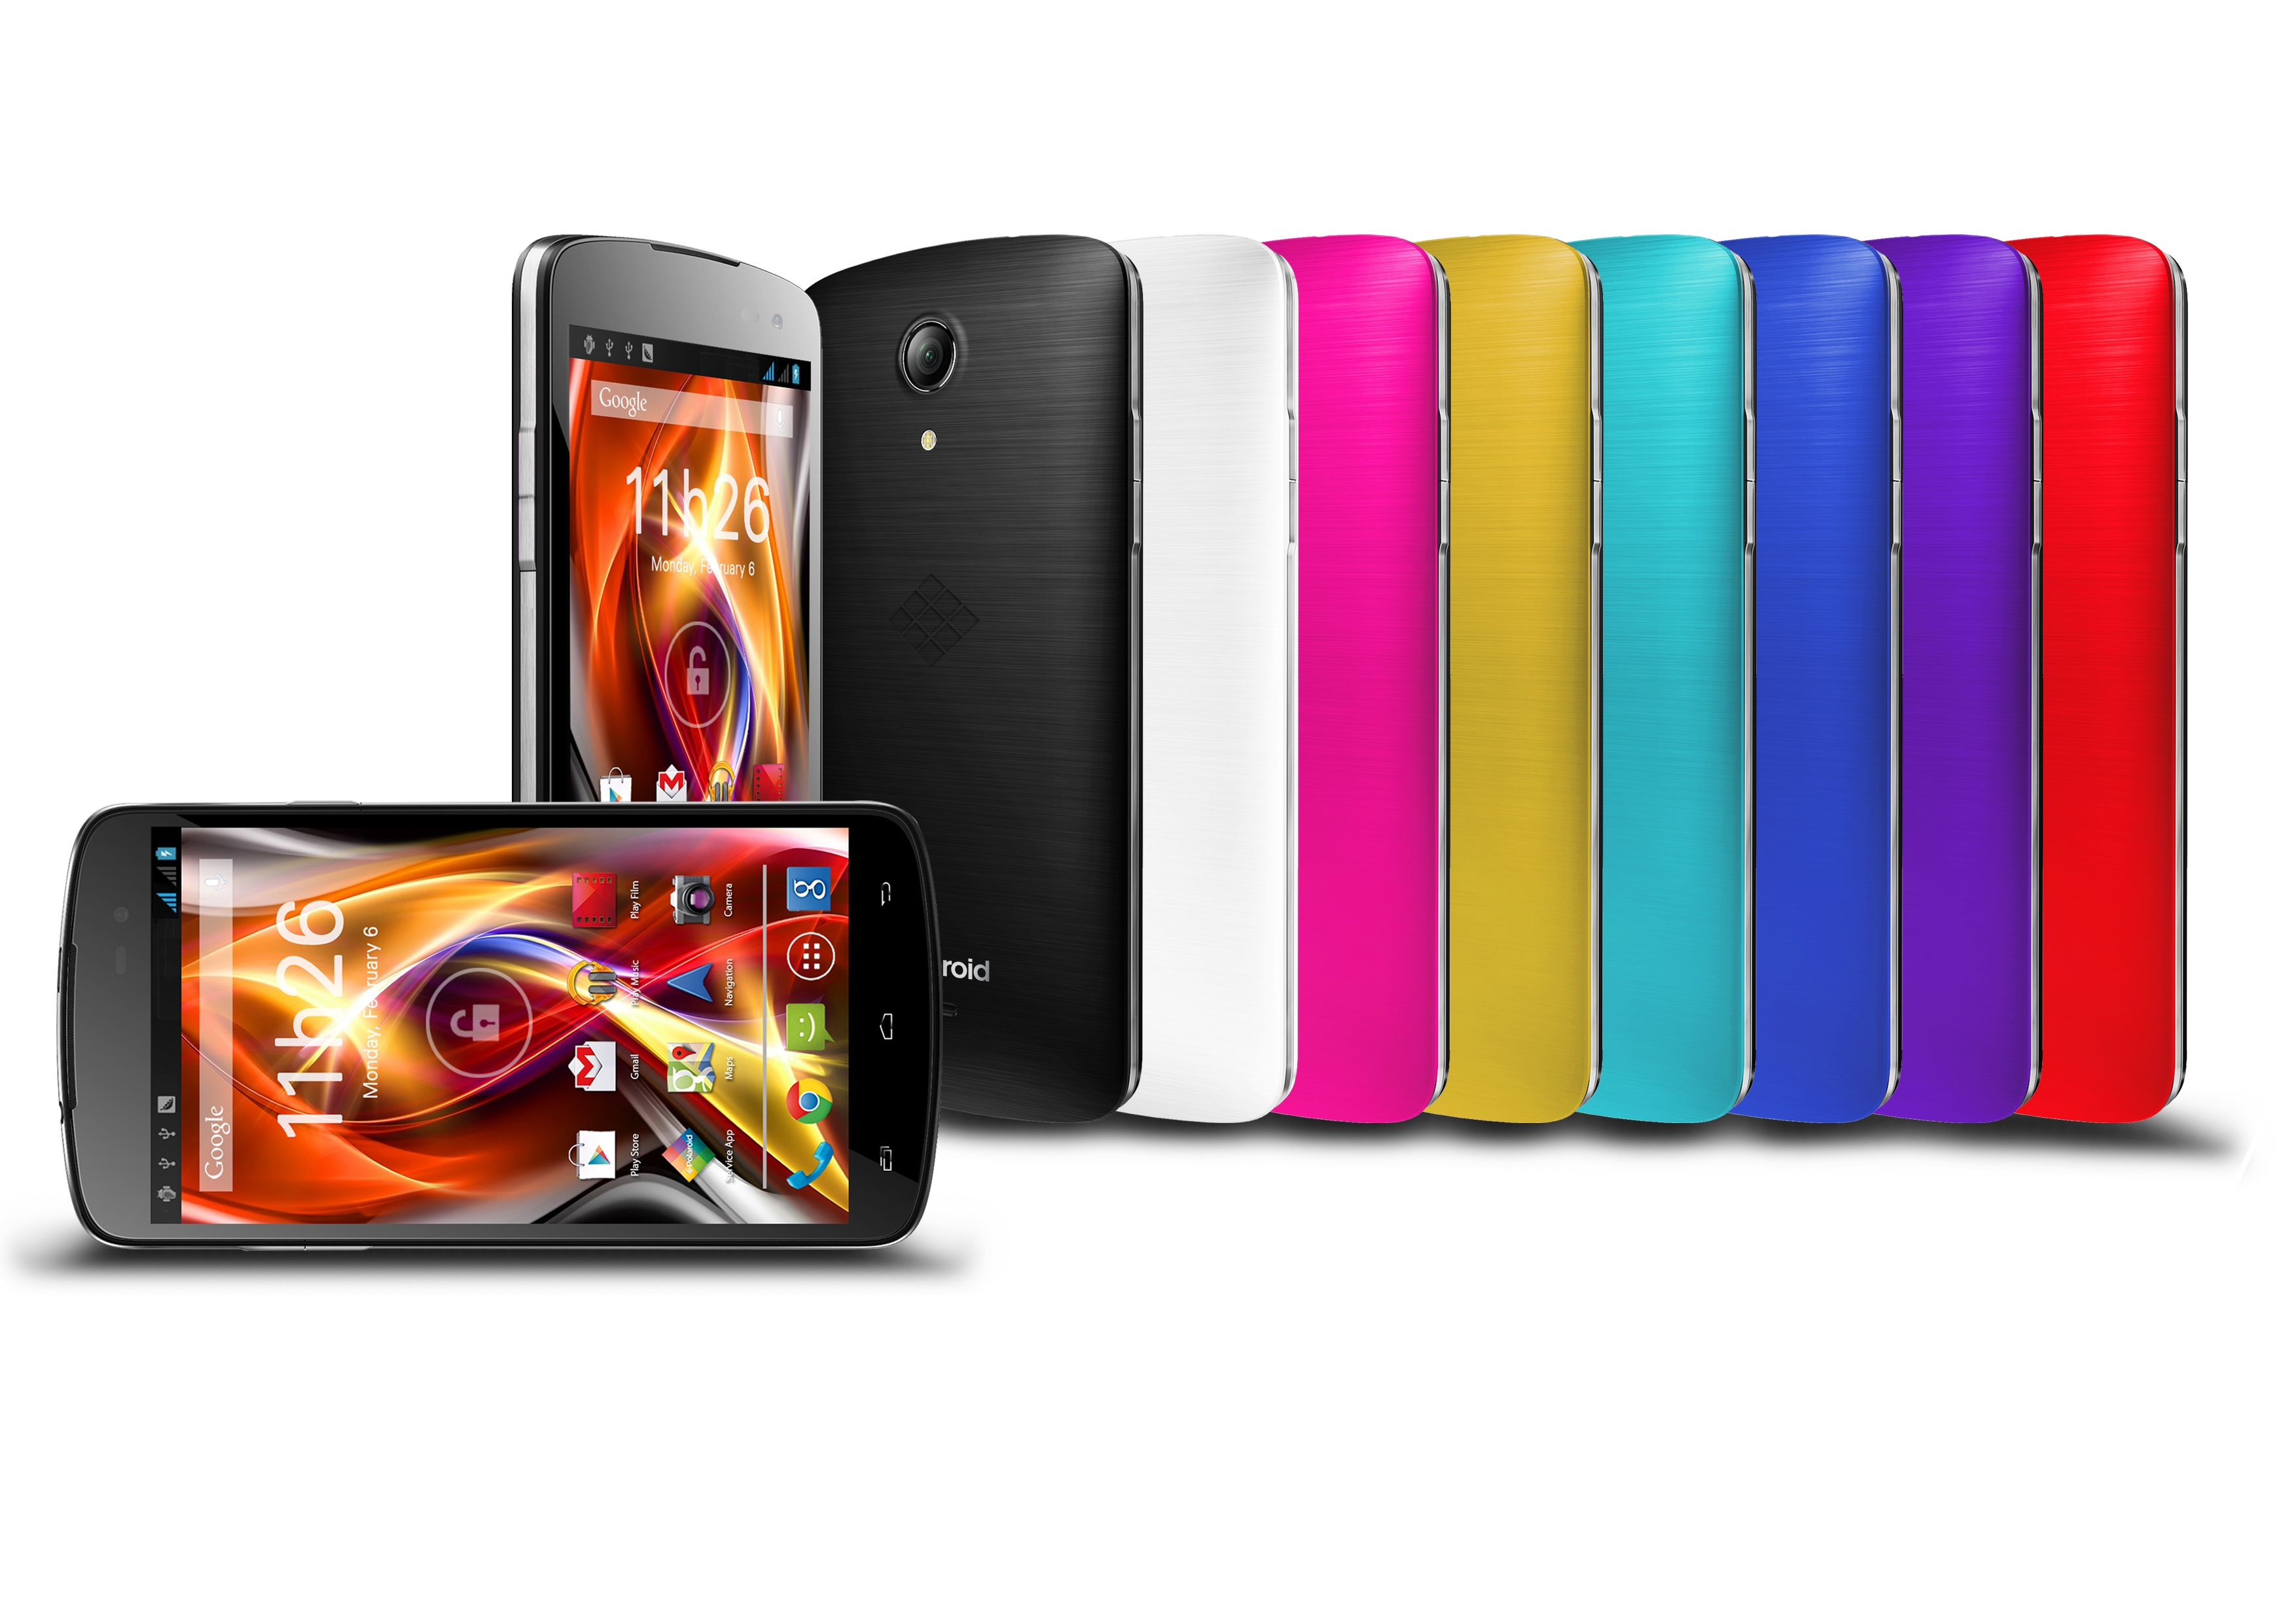 5-3g-octa-core-android-smartphone.jpg